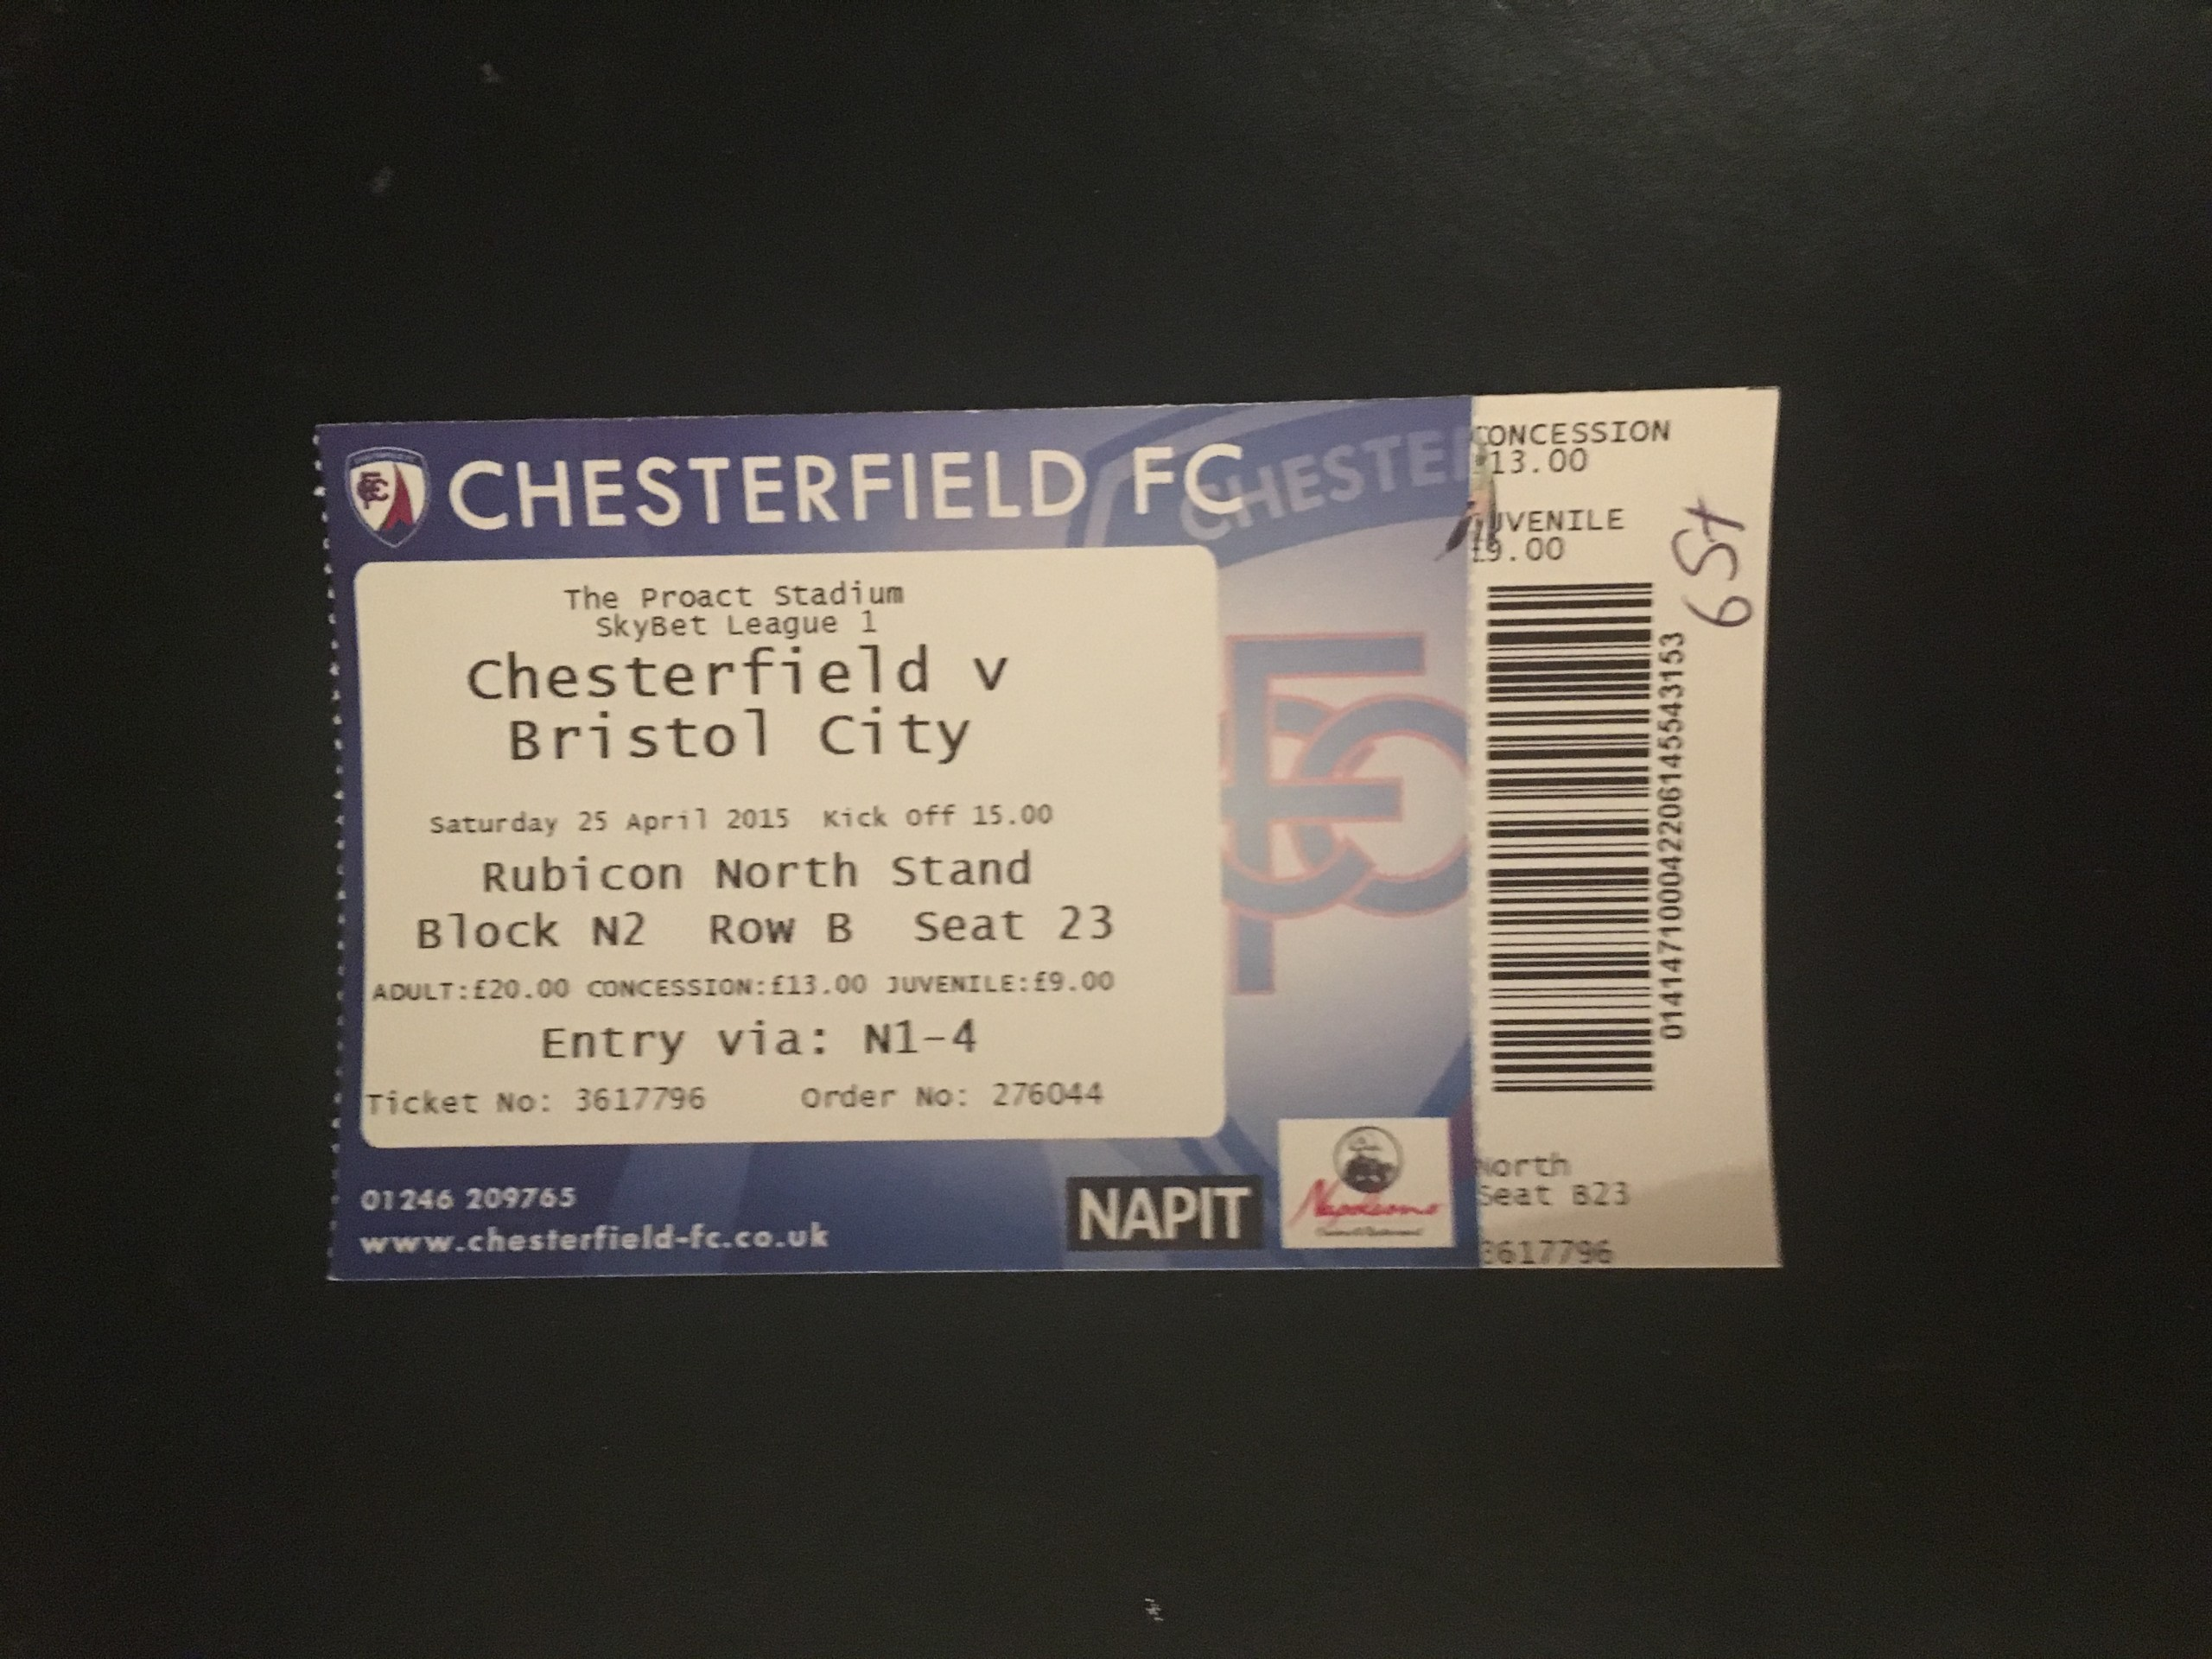 Chesterfield v Bristol City 25-04-2015 Ticket